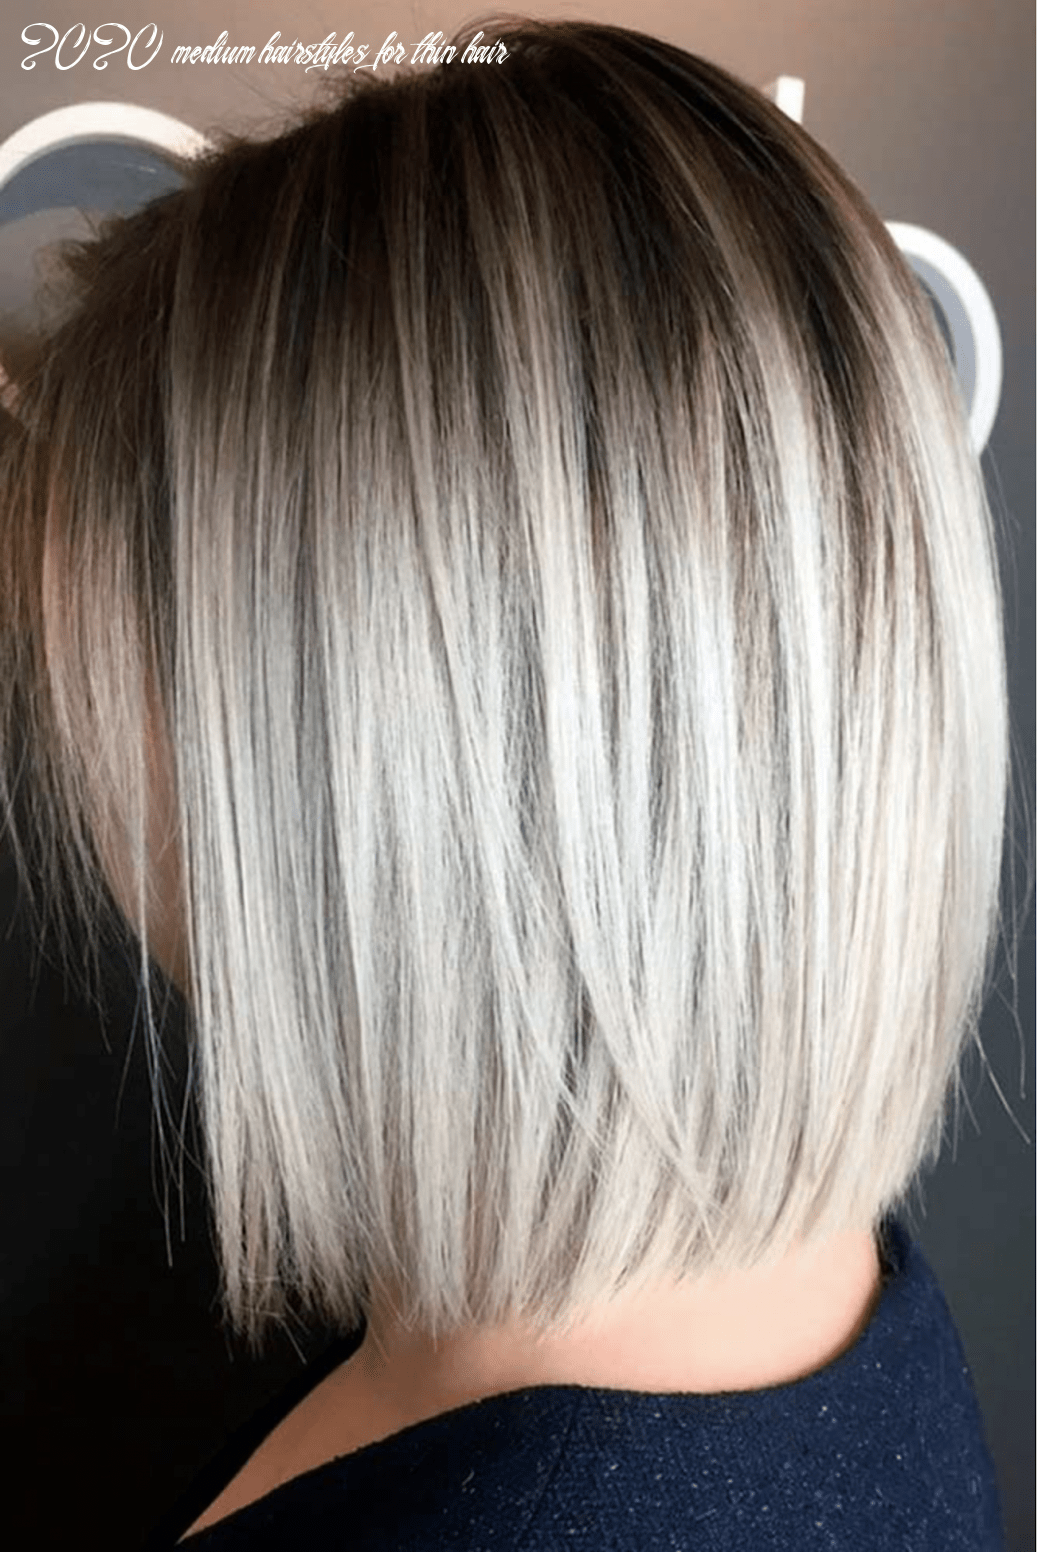 12 Trendy Styles For Modern Bob Haircuts For Fine Hair ...